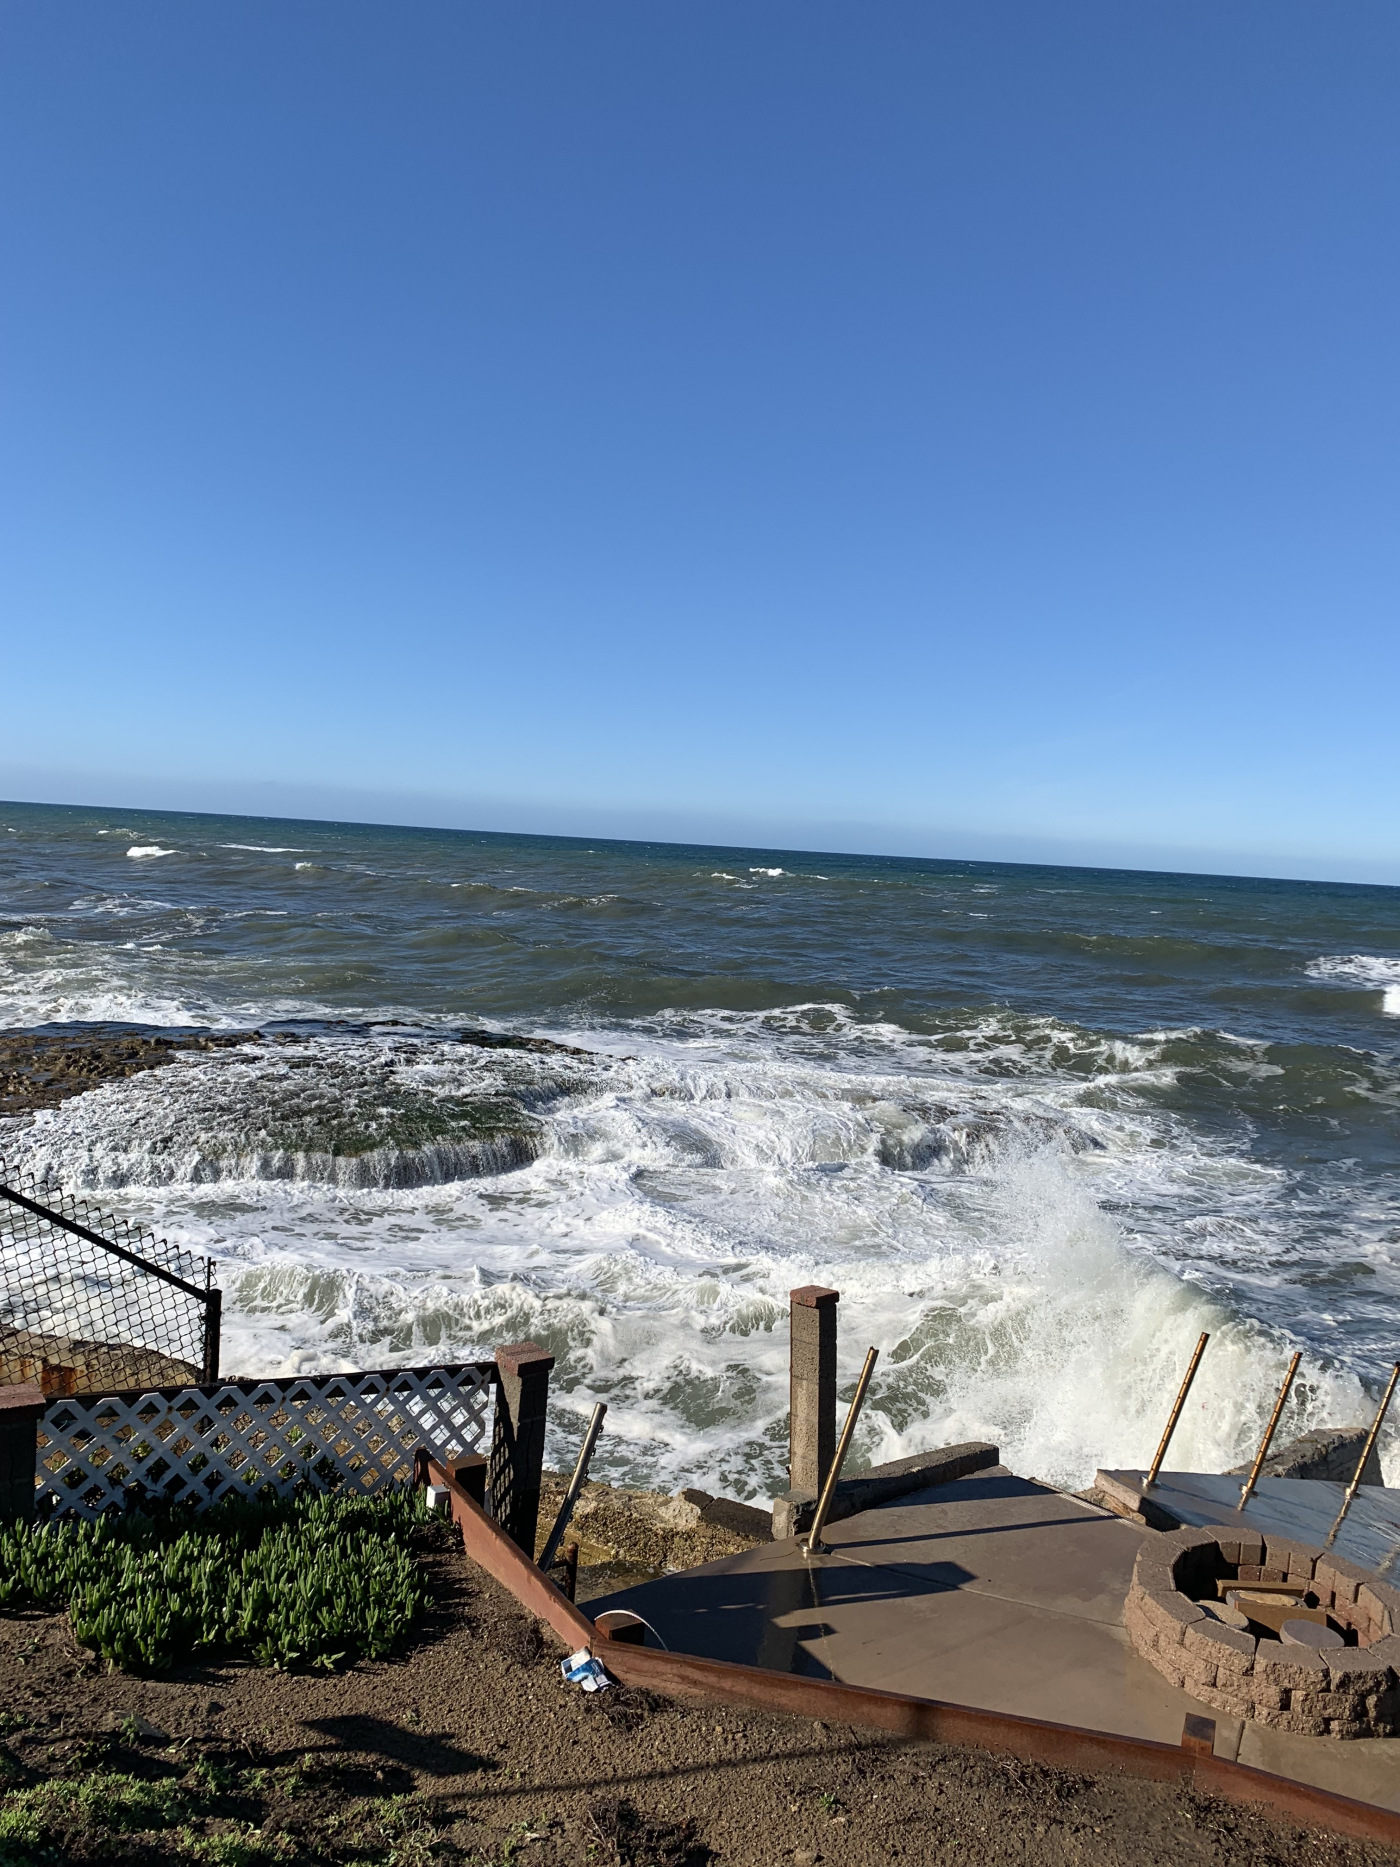 The view from my hotel the Inn at Sunset Cliffs in San Diego, California.